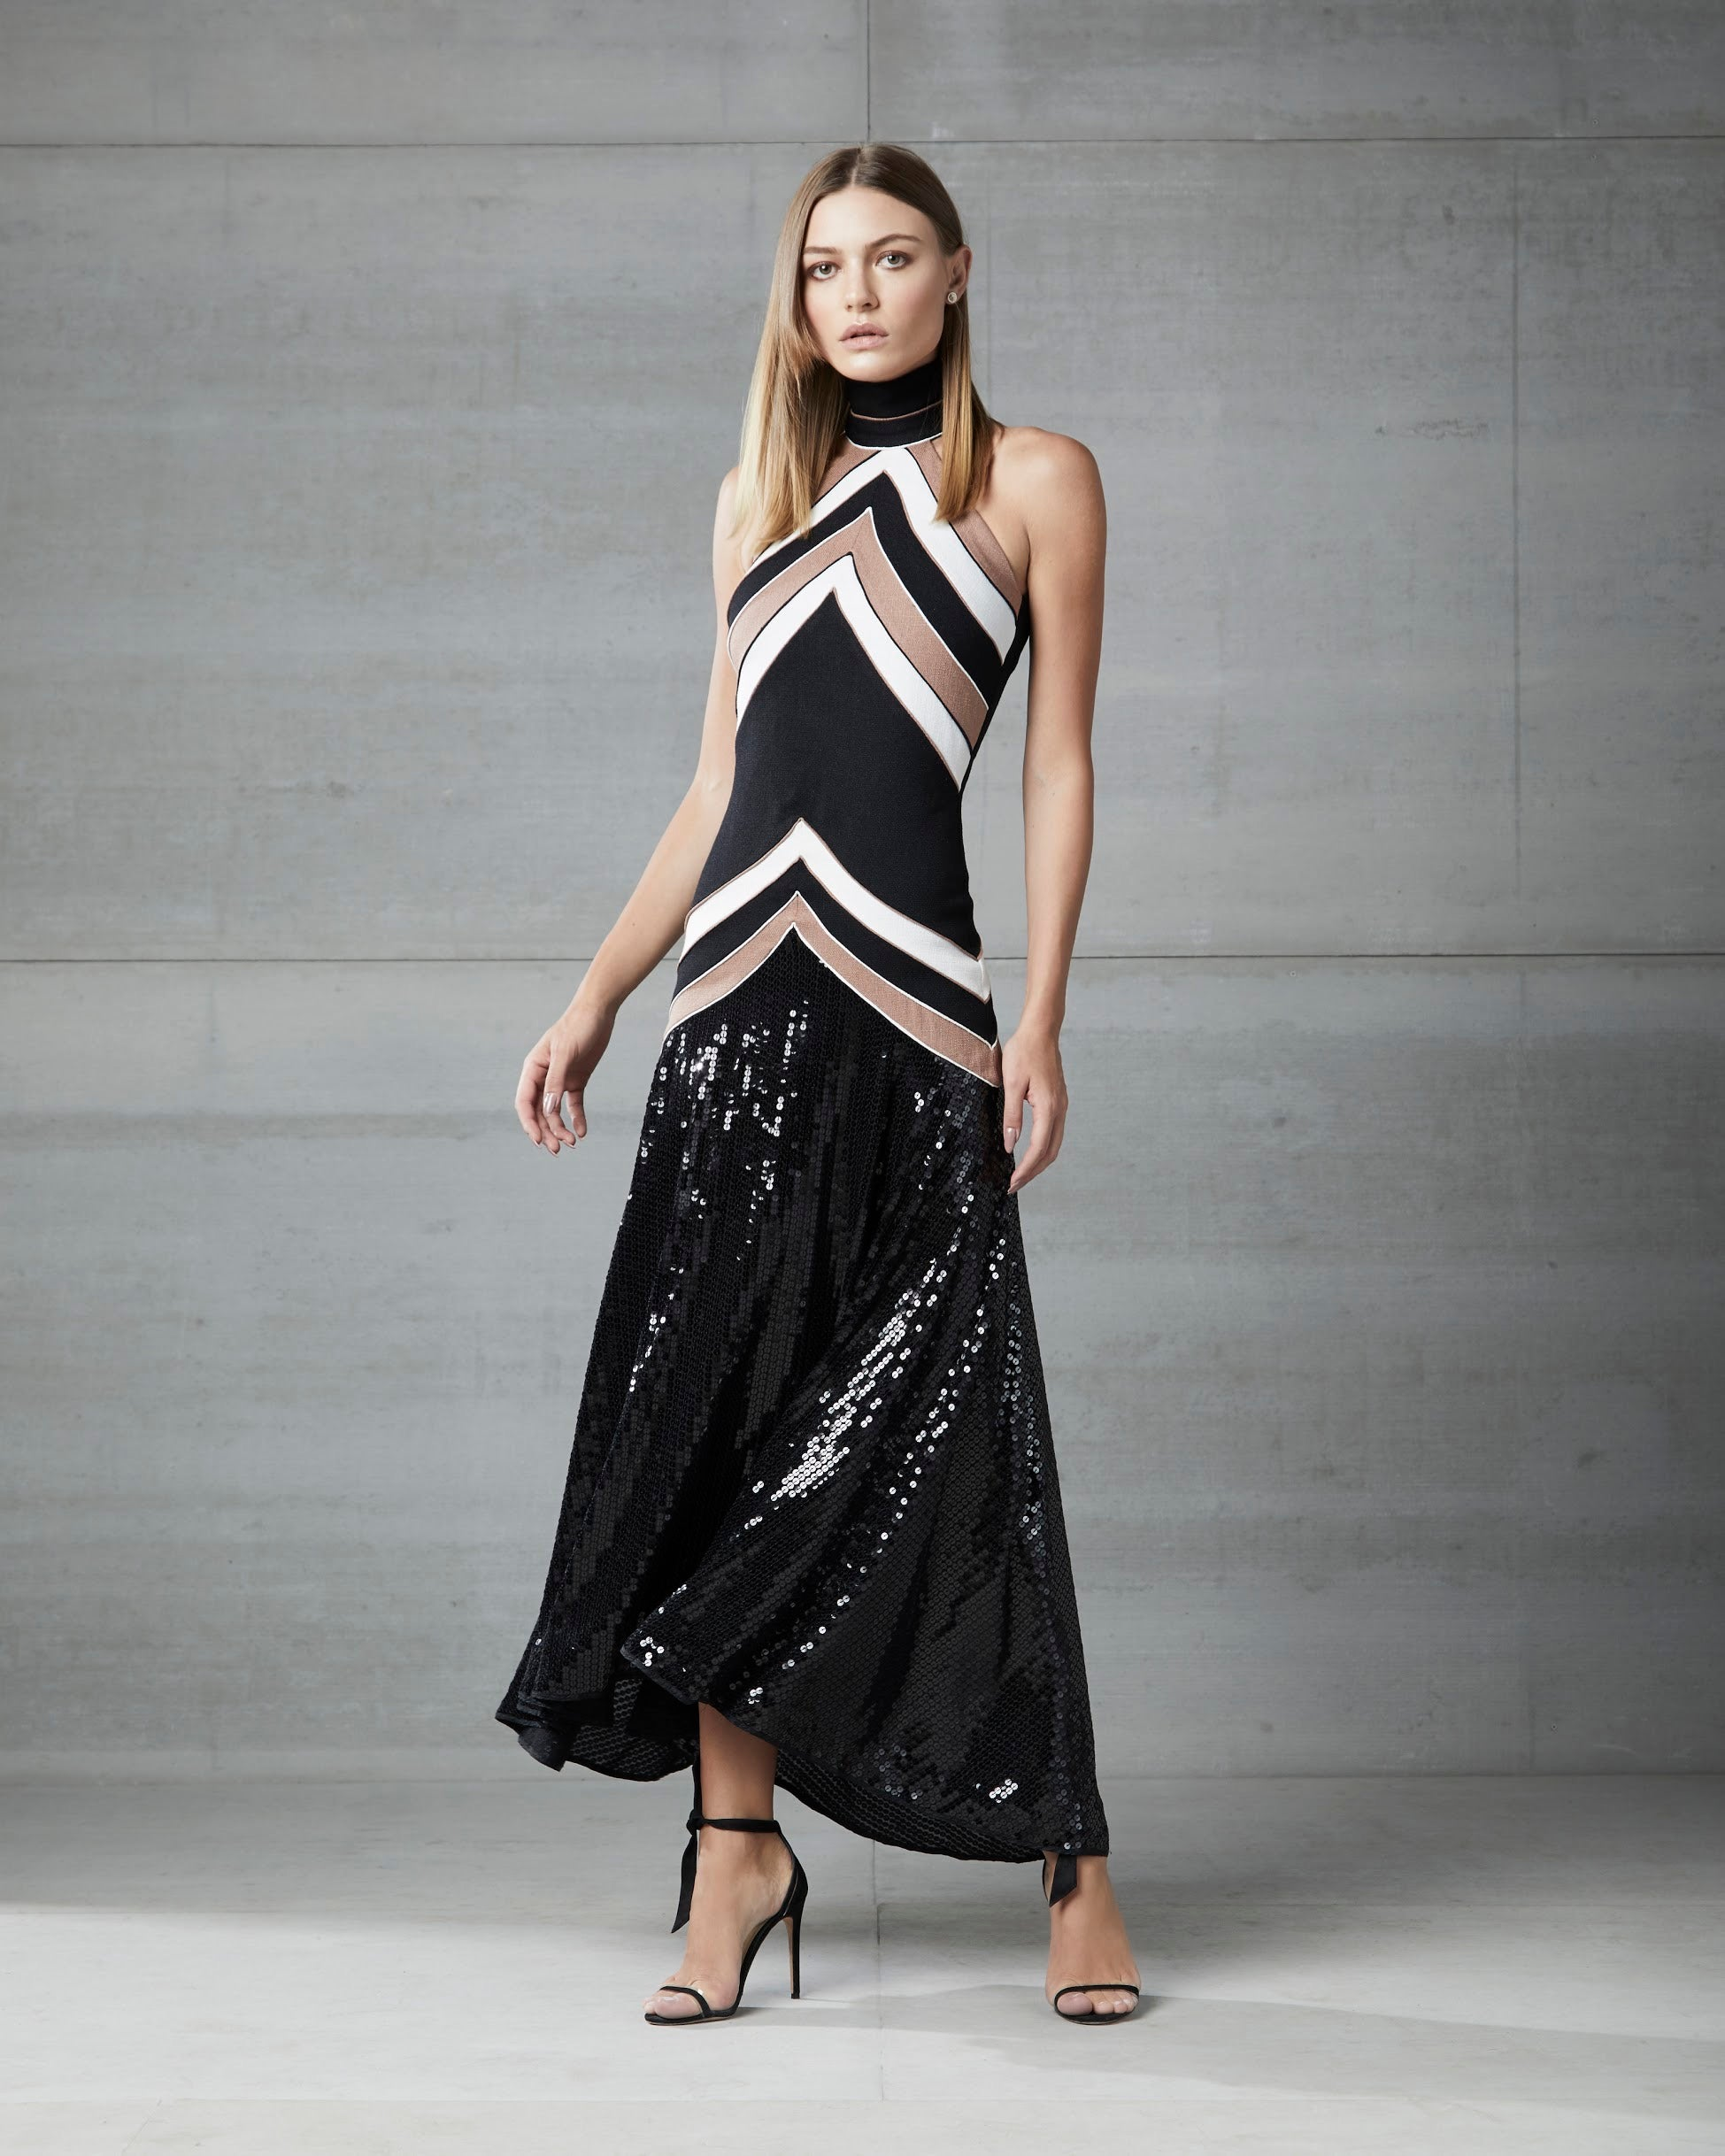 BLACK WHITE & BROWN HALTER LONG DRESS W/ BLACK SEQUIN DETAIL